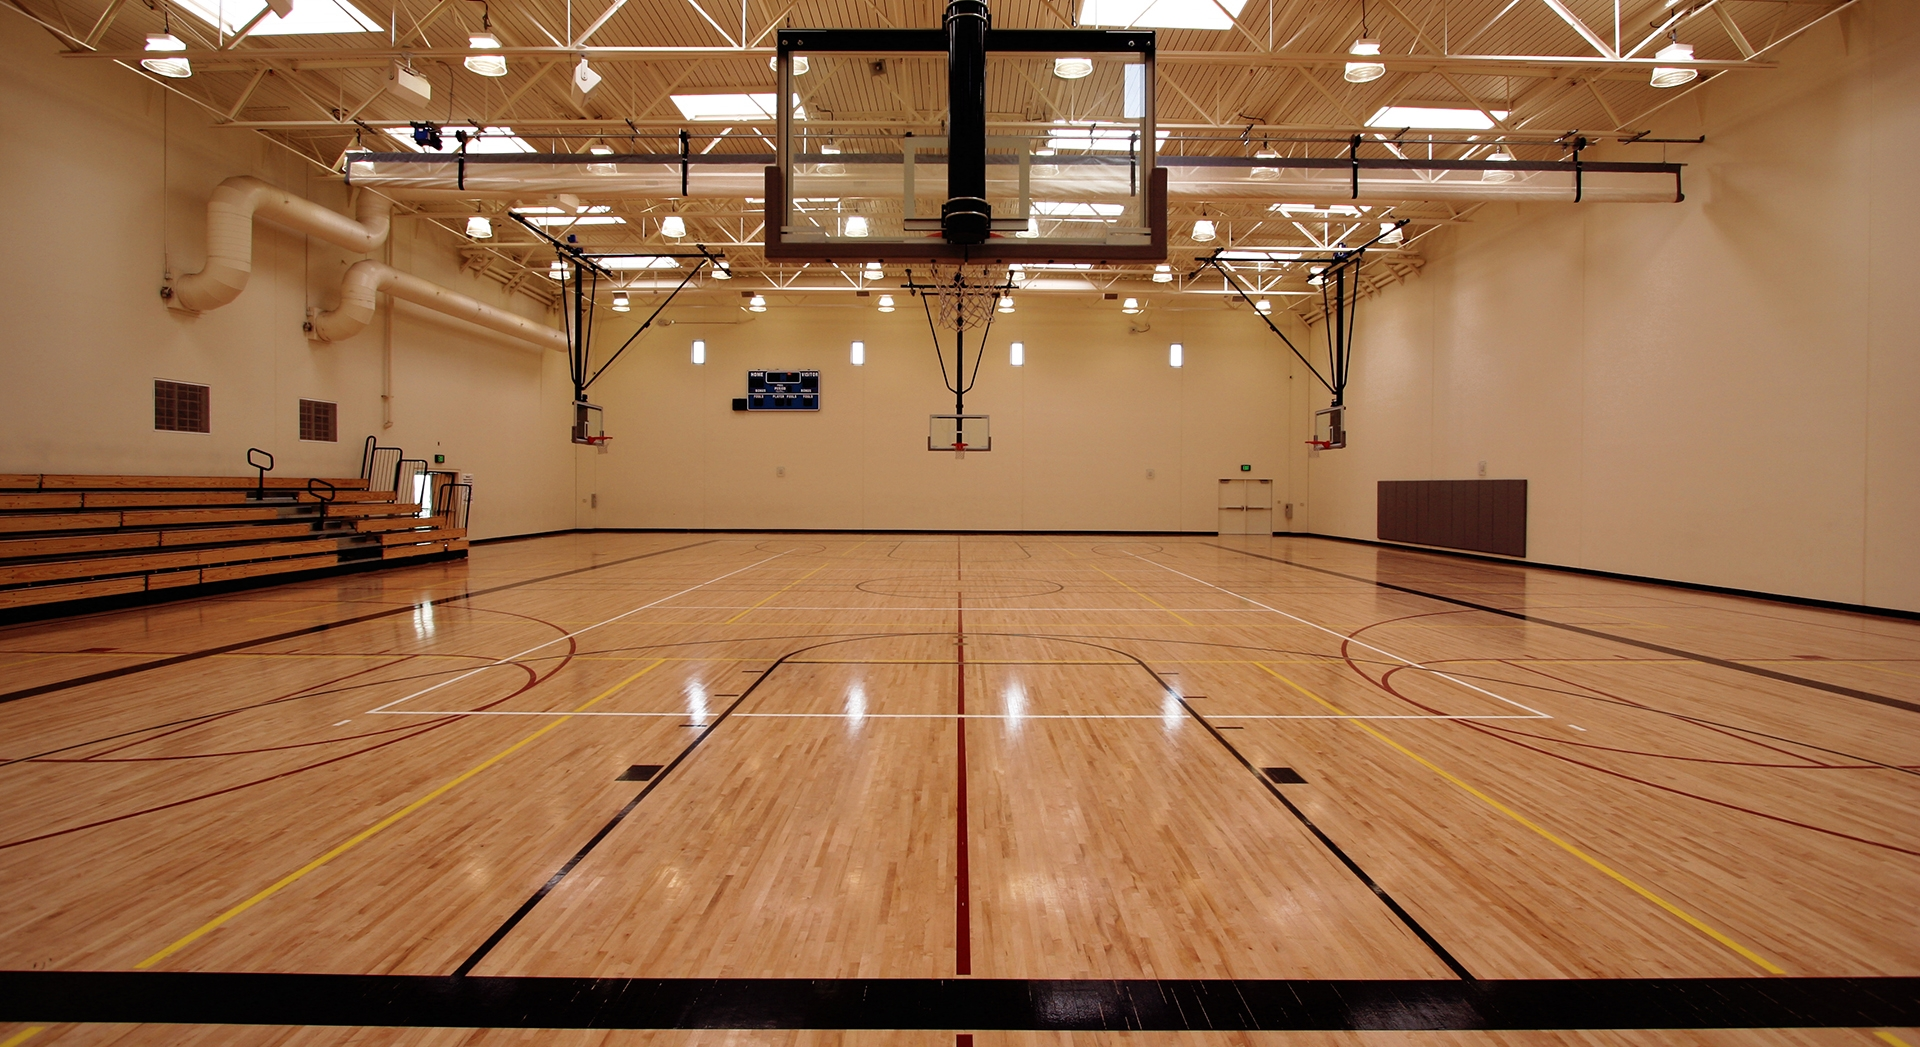 How to extend the lifetime of sport floors?